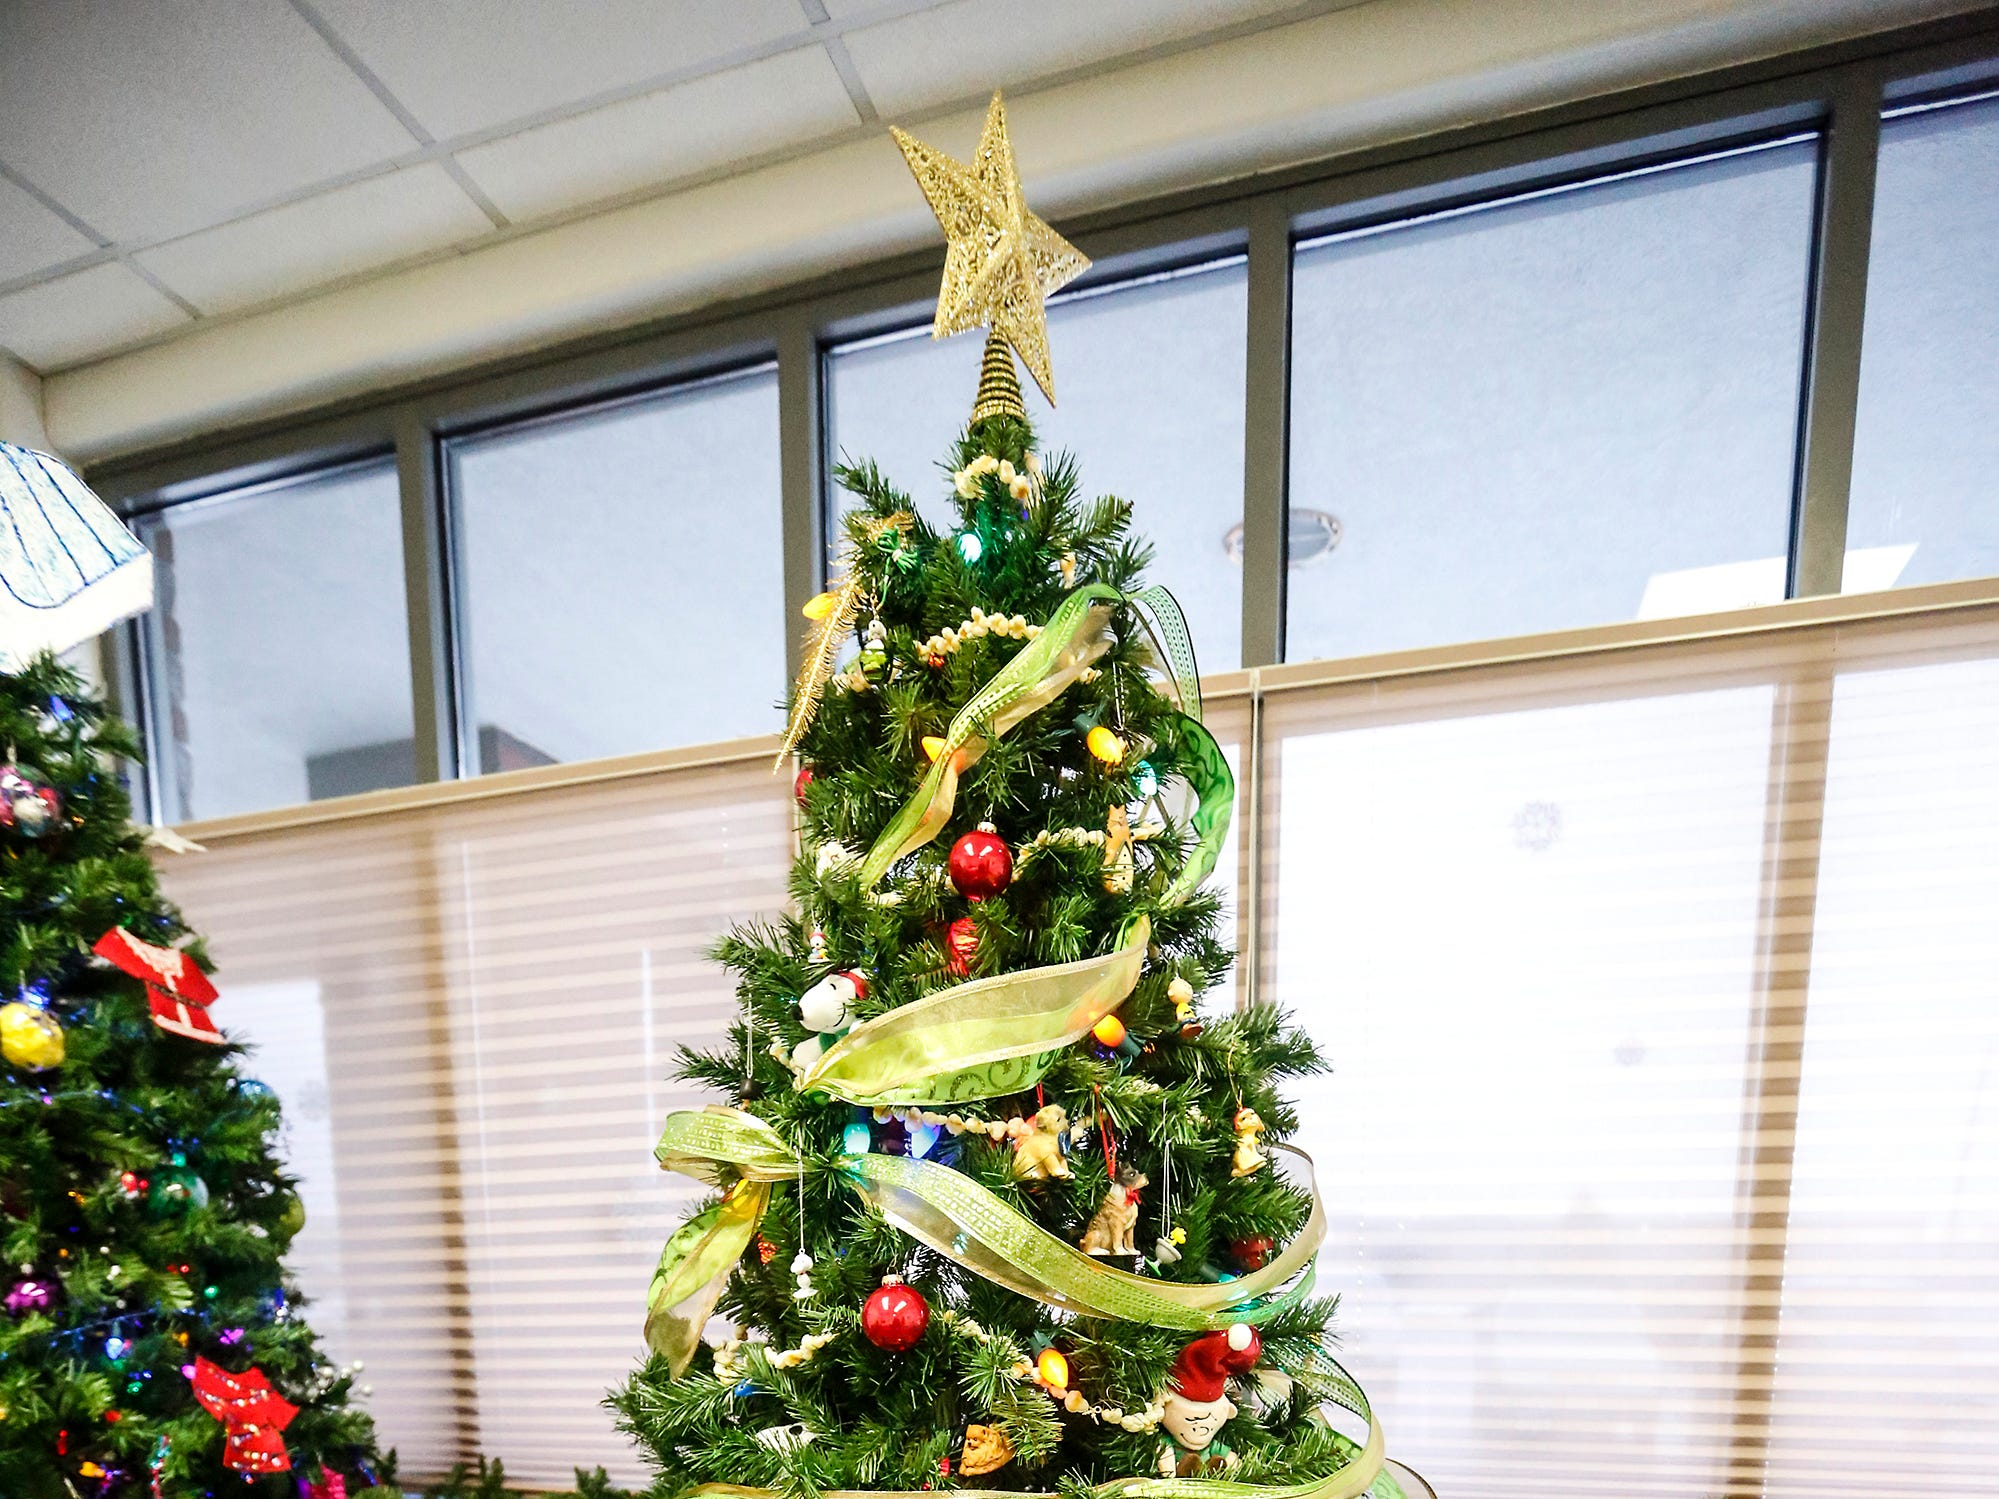 A Christmas tree decorated by Fond du Lac Humane Society on display Nov. 30 at Thrivent Financial, 443 N. Pioneer Road in Fond du Lac. A total of five trees made by local nonprofits are on display and can be voted on with proceeds going to the organizations.